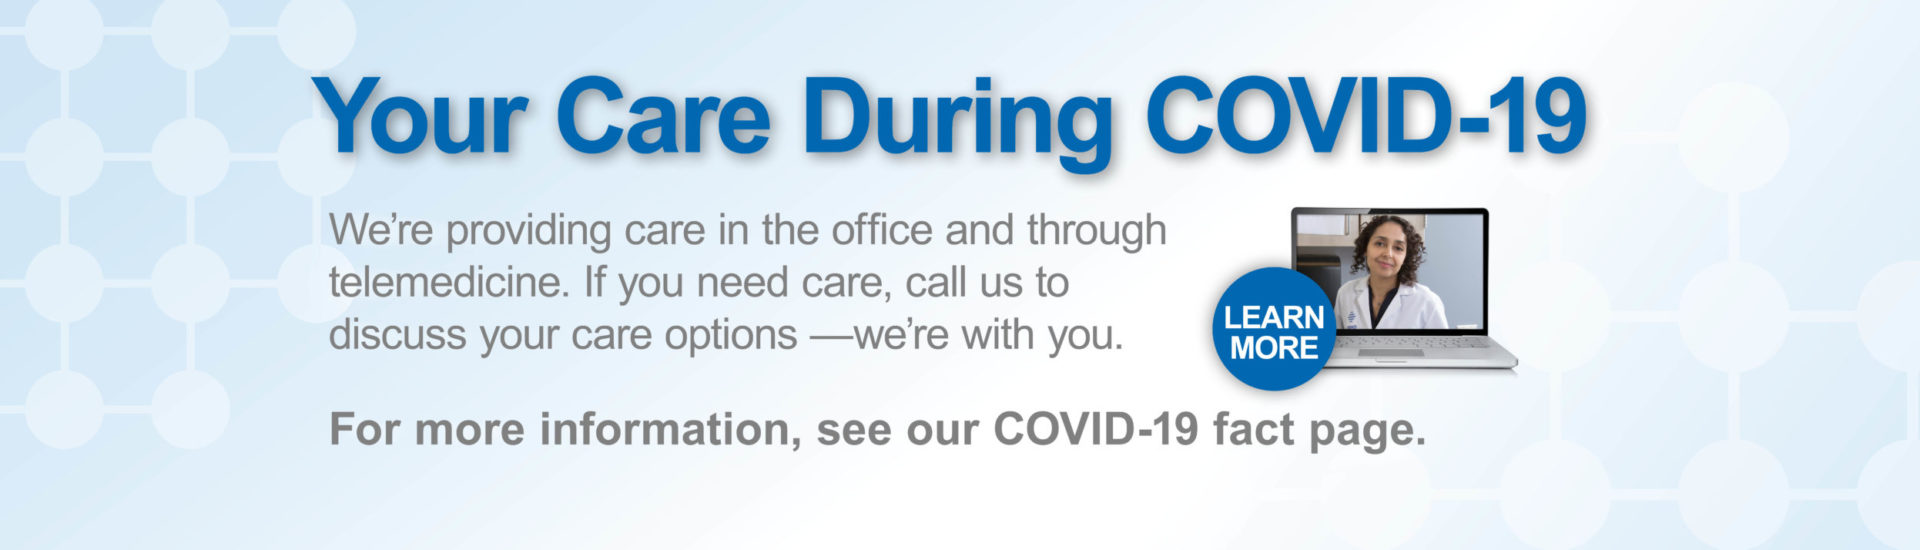 Click to find out more about your care during COVID-19.